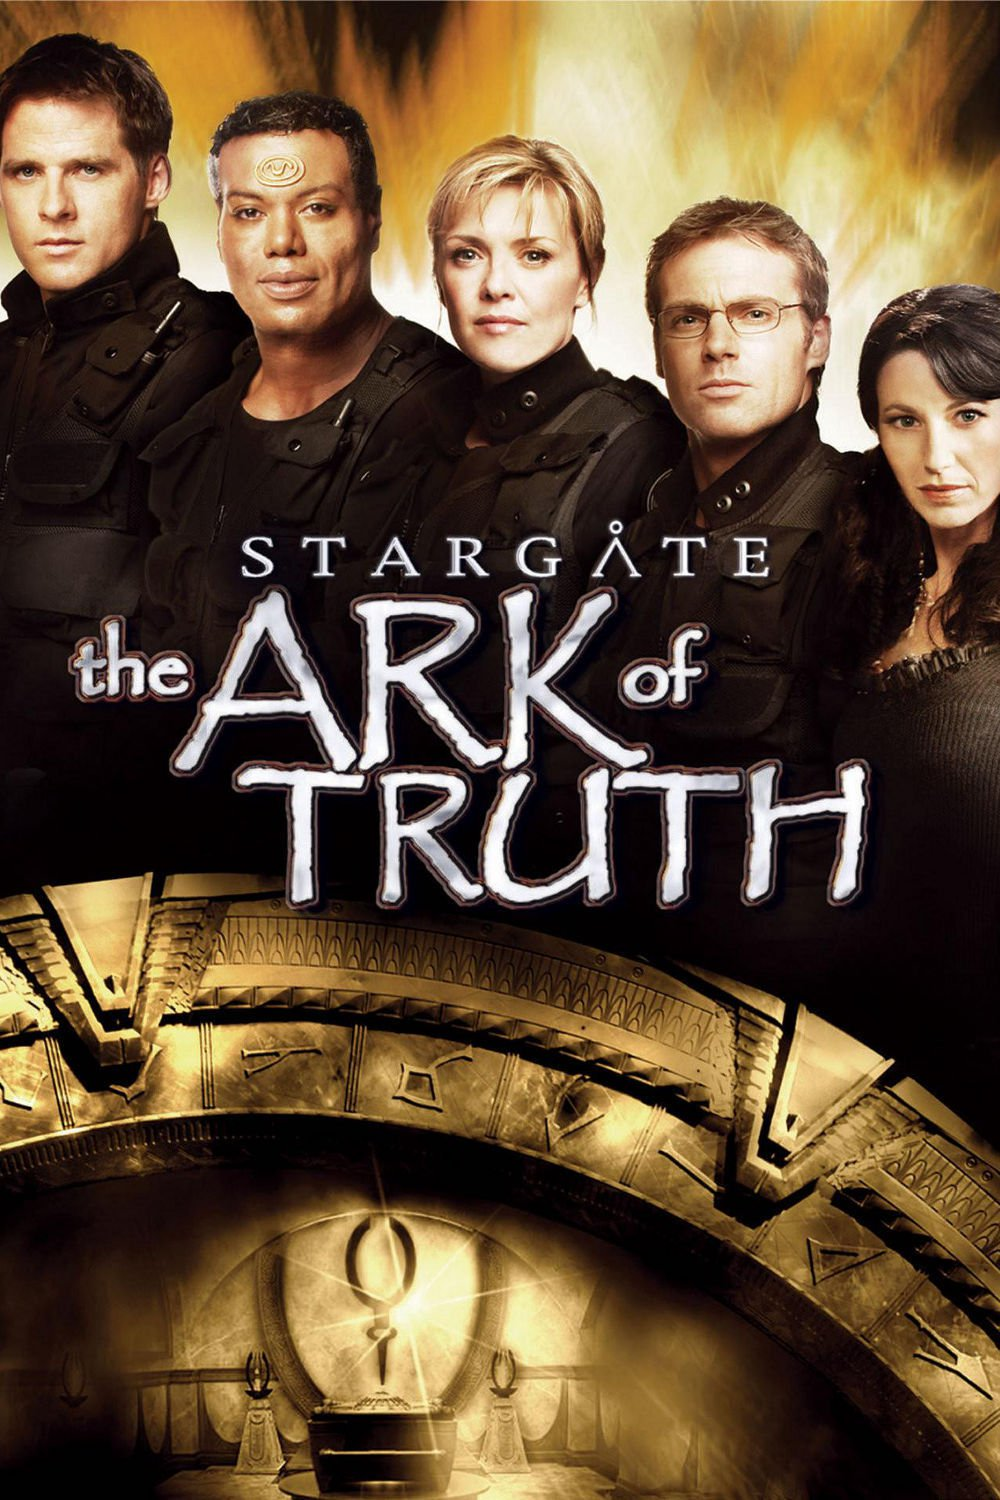 Stargate: The Ark of Truth, 2008